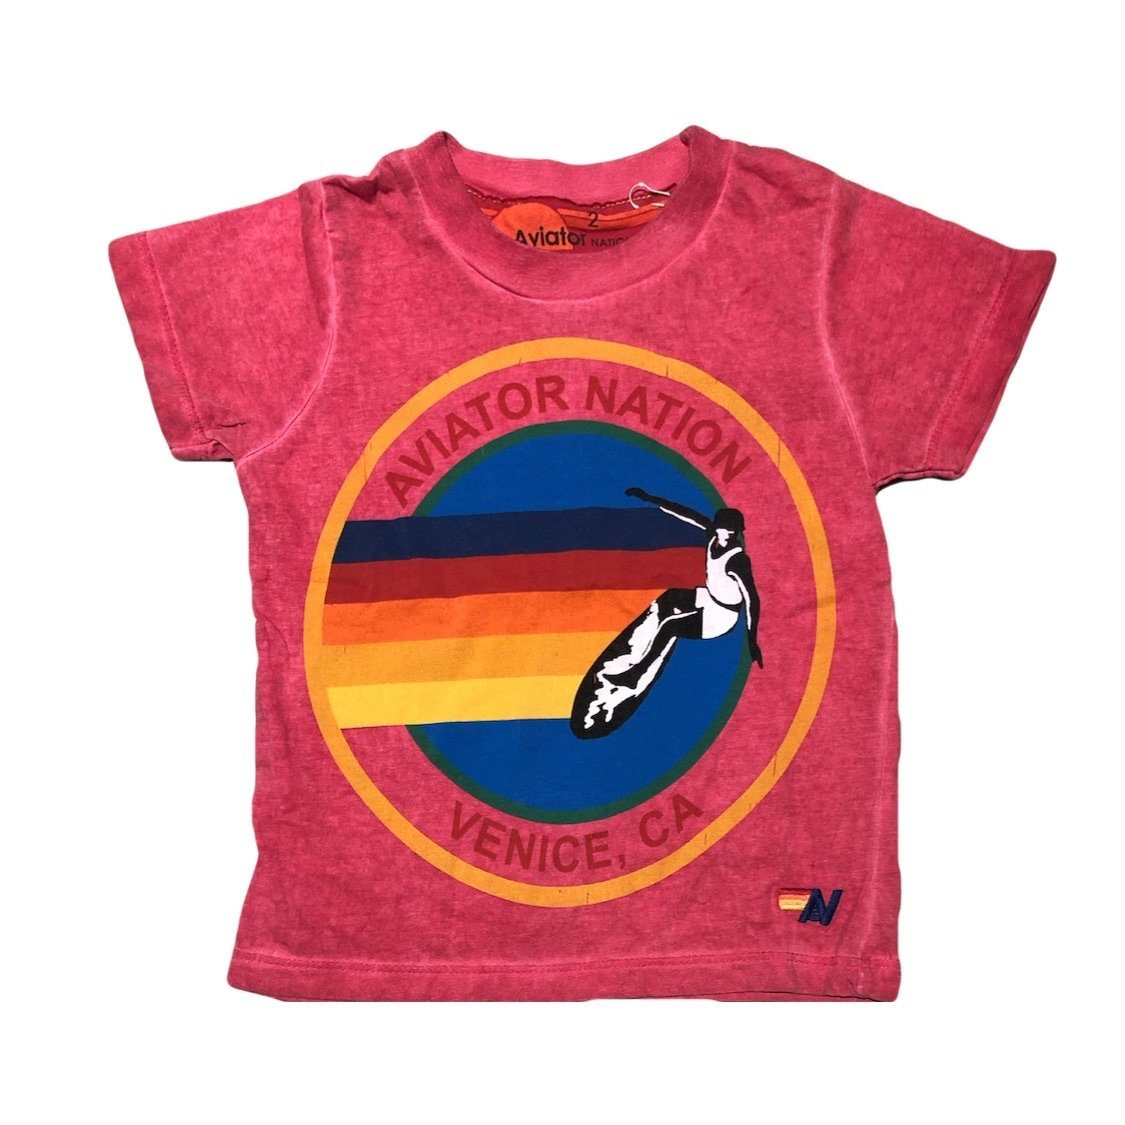 Aviator Nation - Kid's Vintage Red Venice Tee Short Sleeve Shirts Aviator Nation